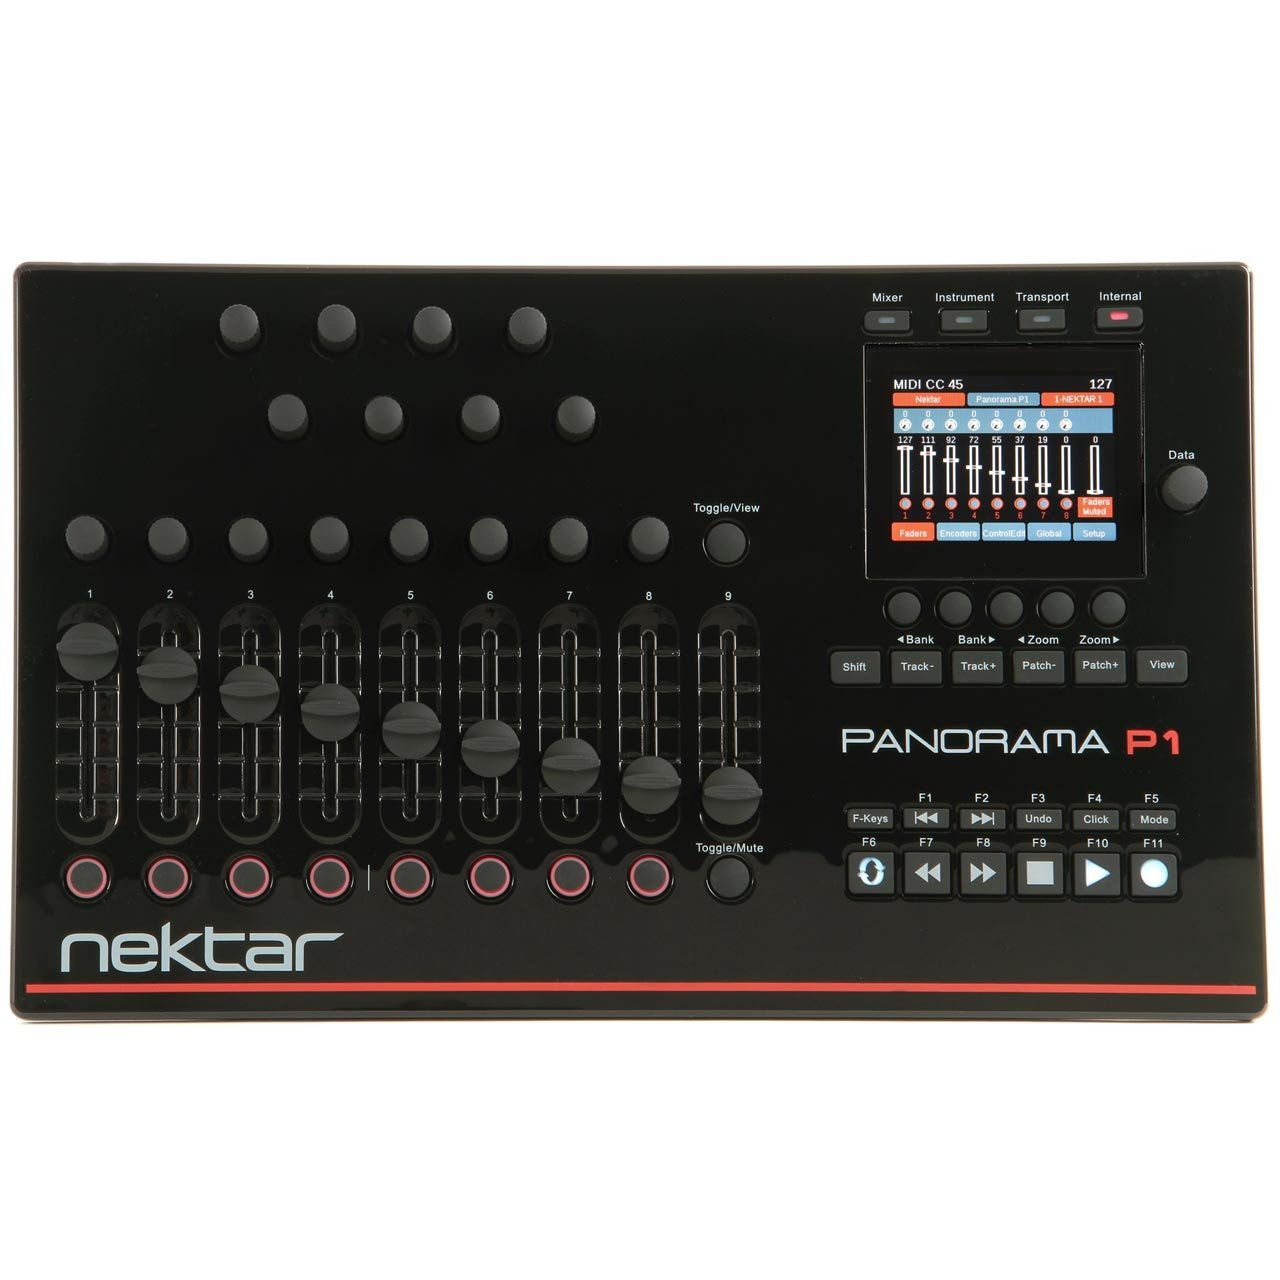 Control Surfaces - Nektar Panorama P1 MIDI Control Surface